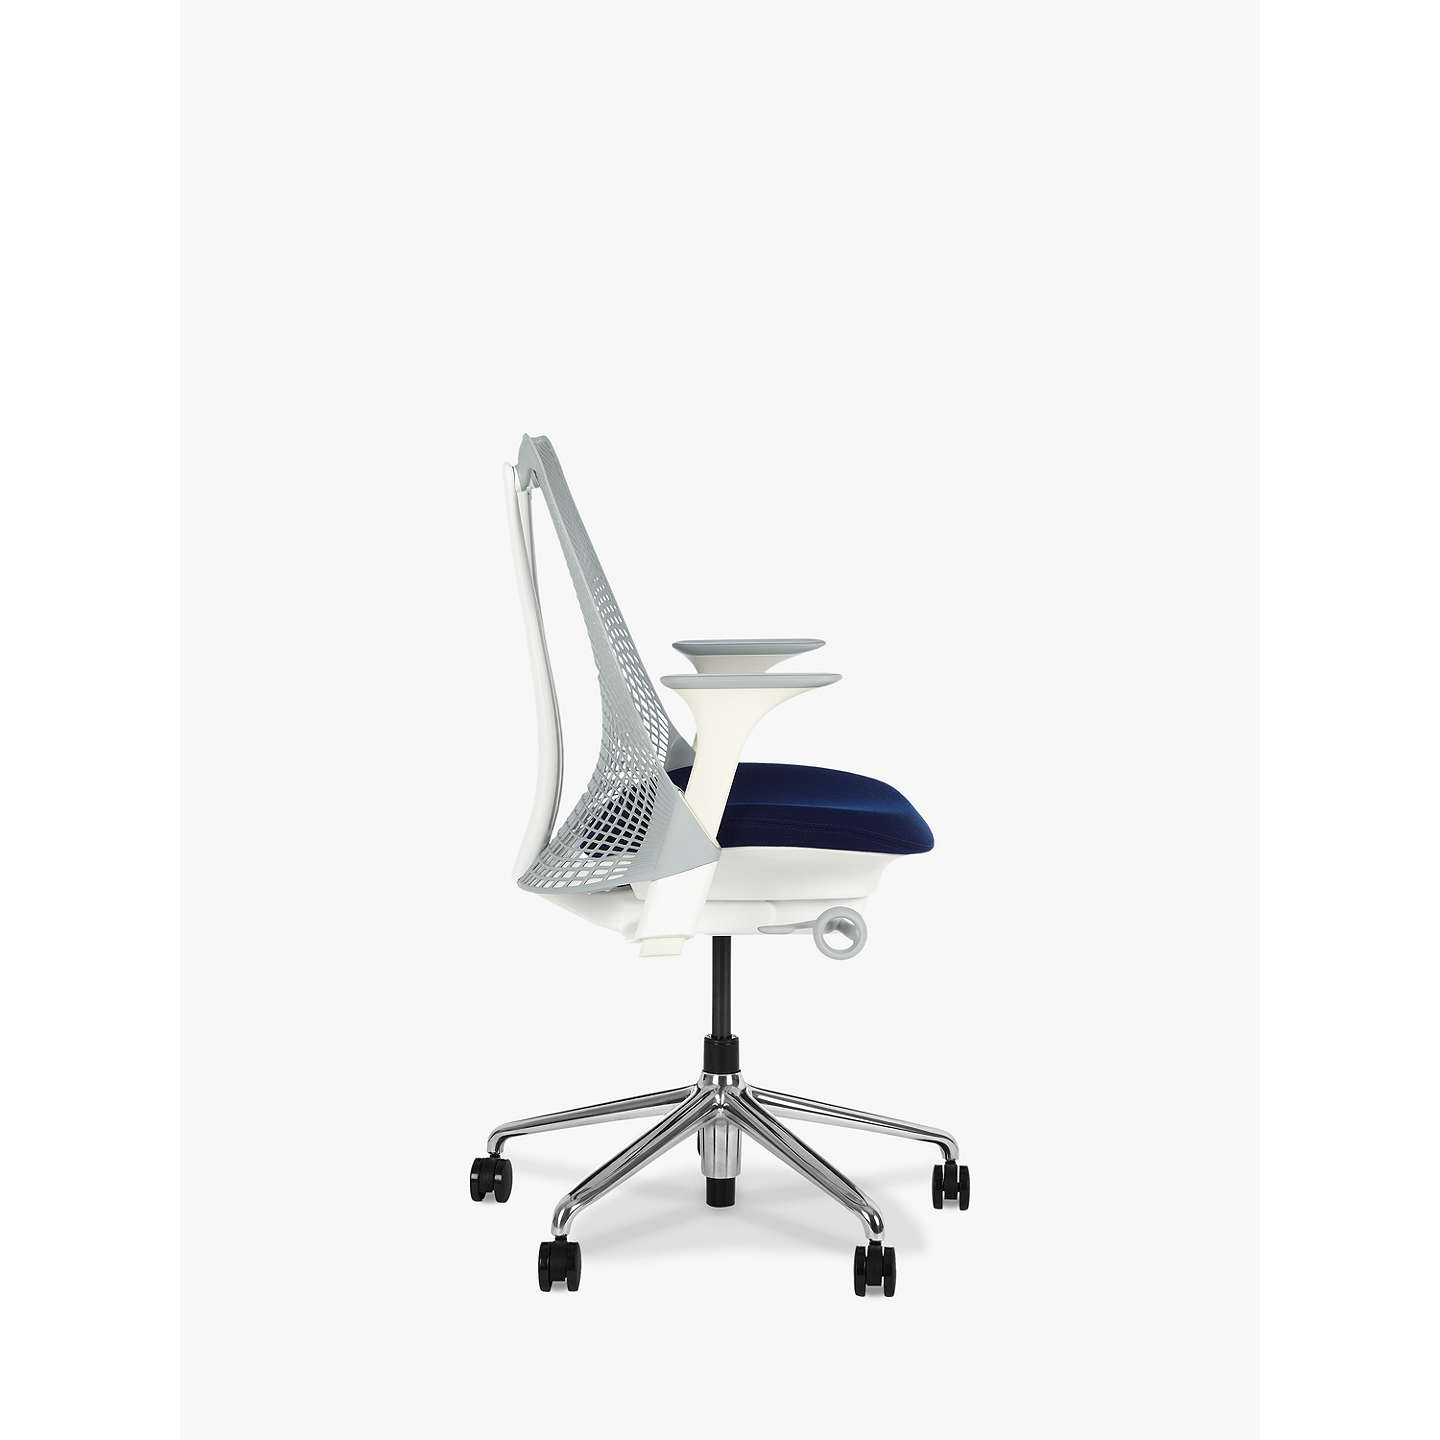 sayl office chair. BuyHerman Miller SAYL Office Chair, Vico Online At Johnlewis.com Sayl Chair